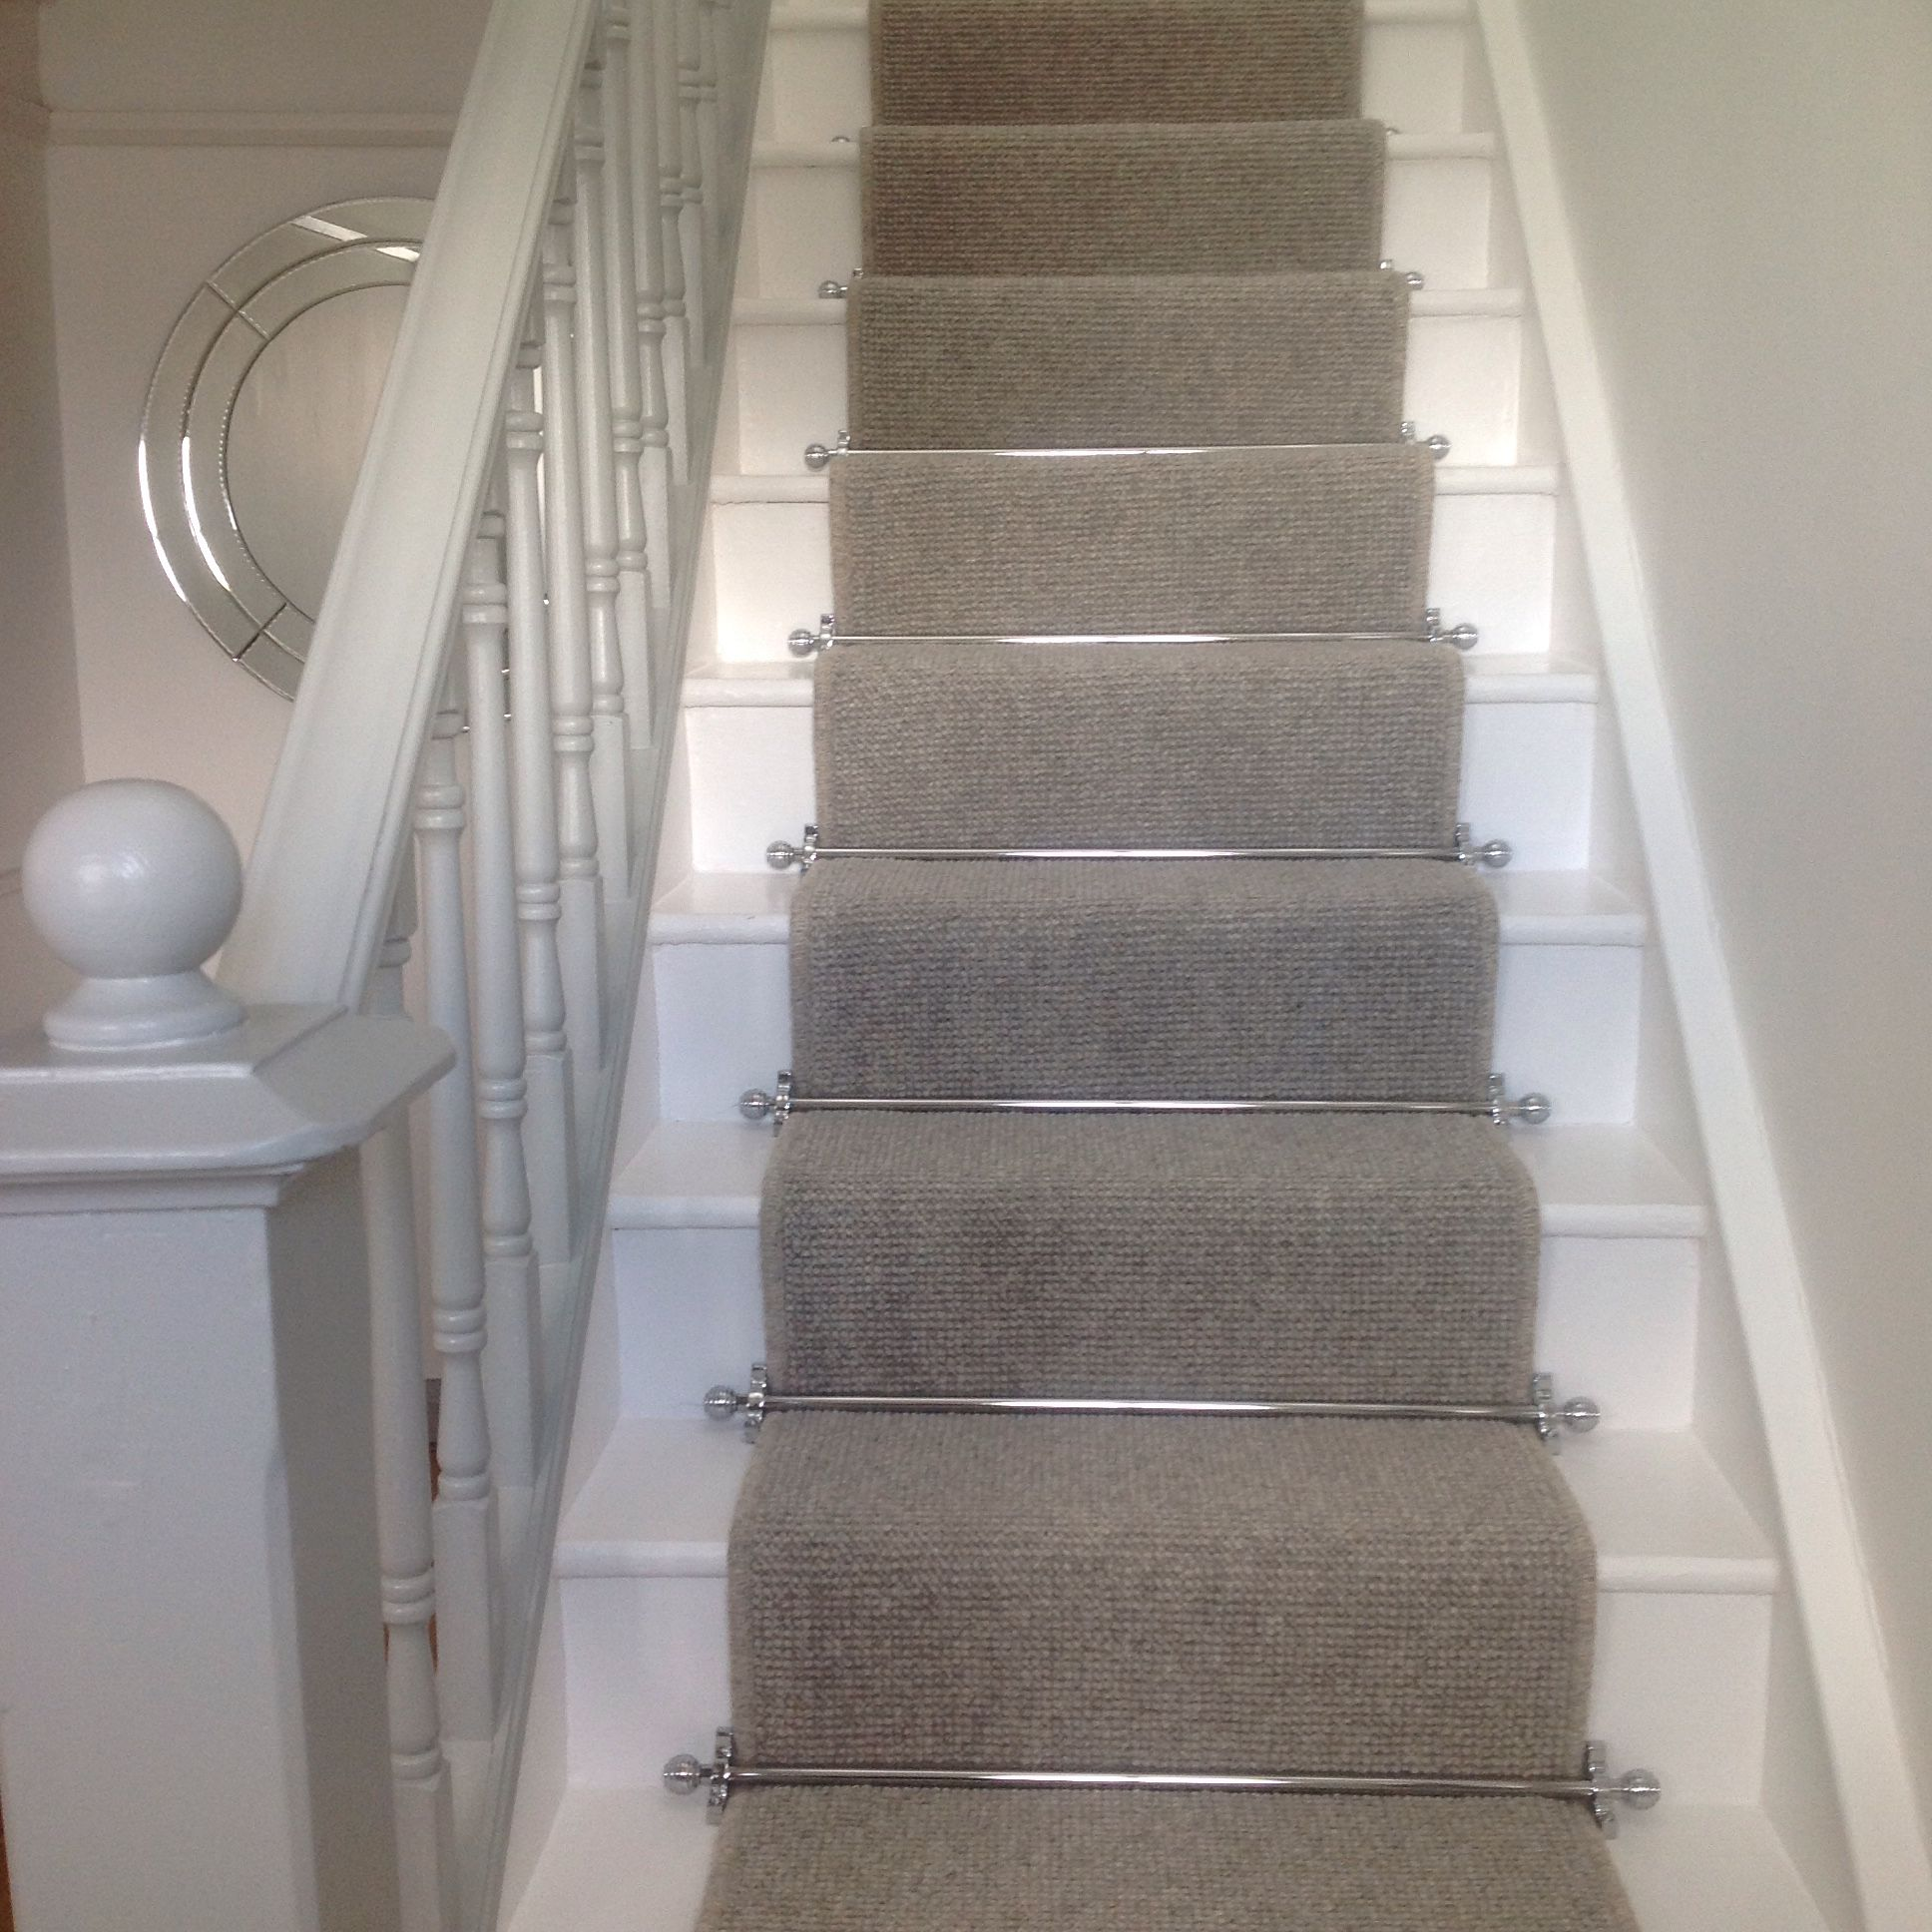 Runner On Stairs With Grey Carpet With Chrome Bars For